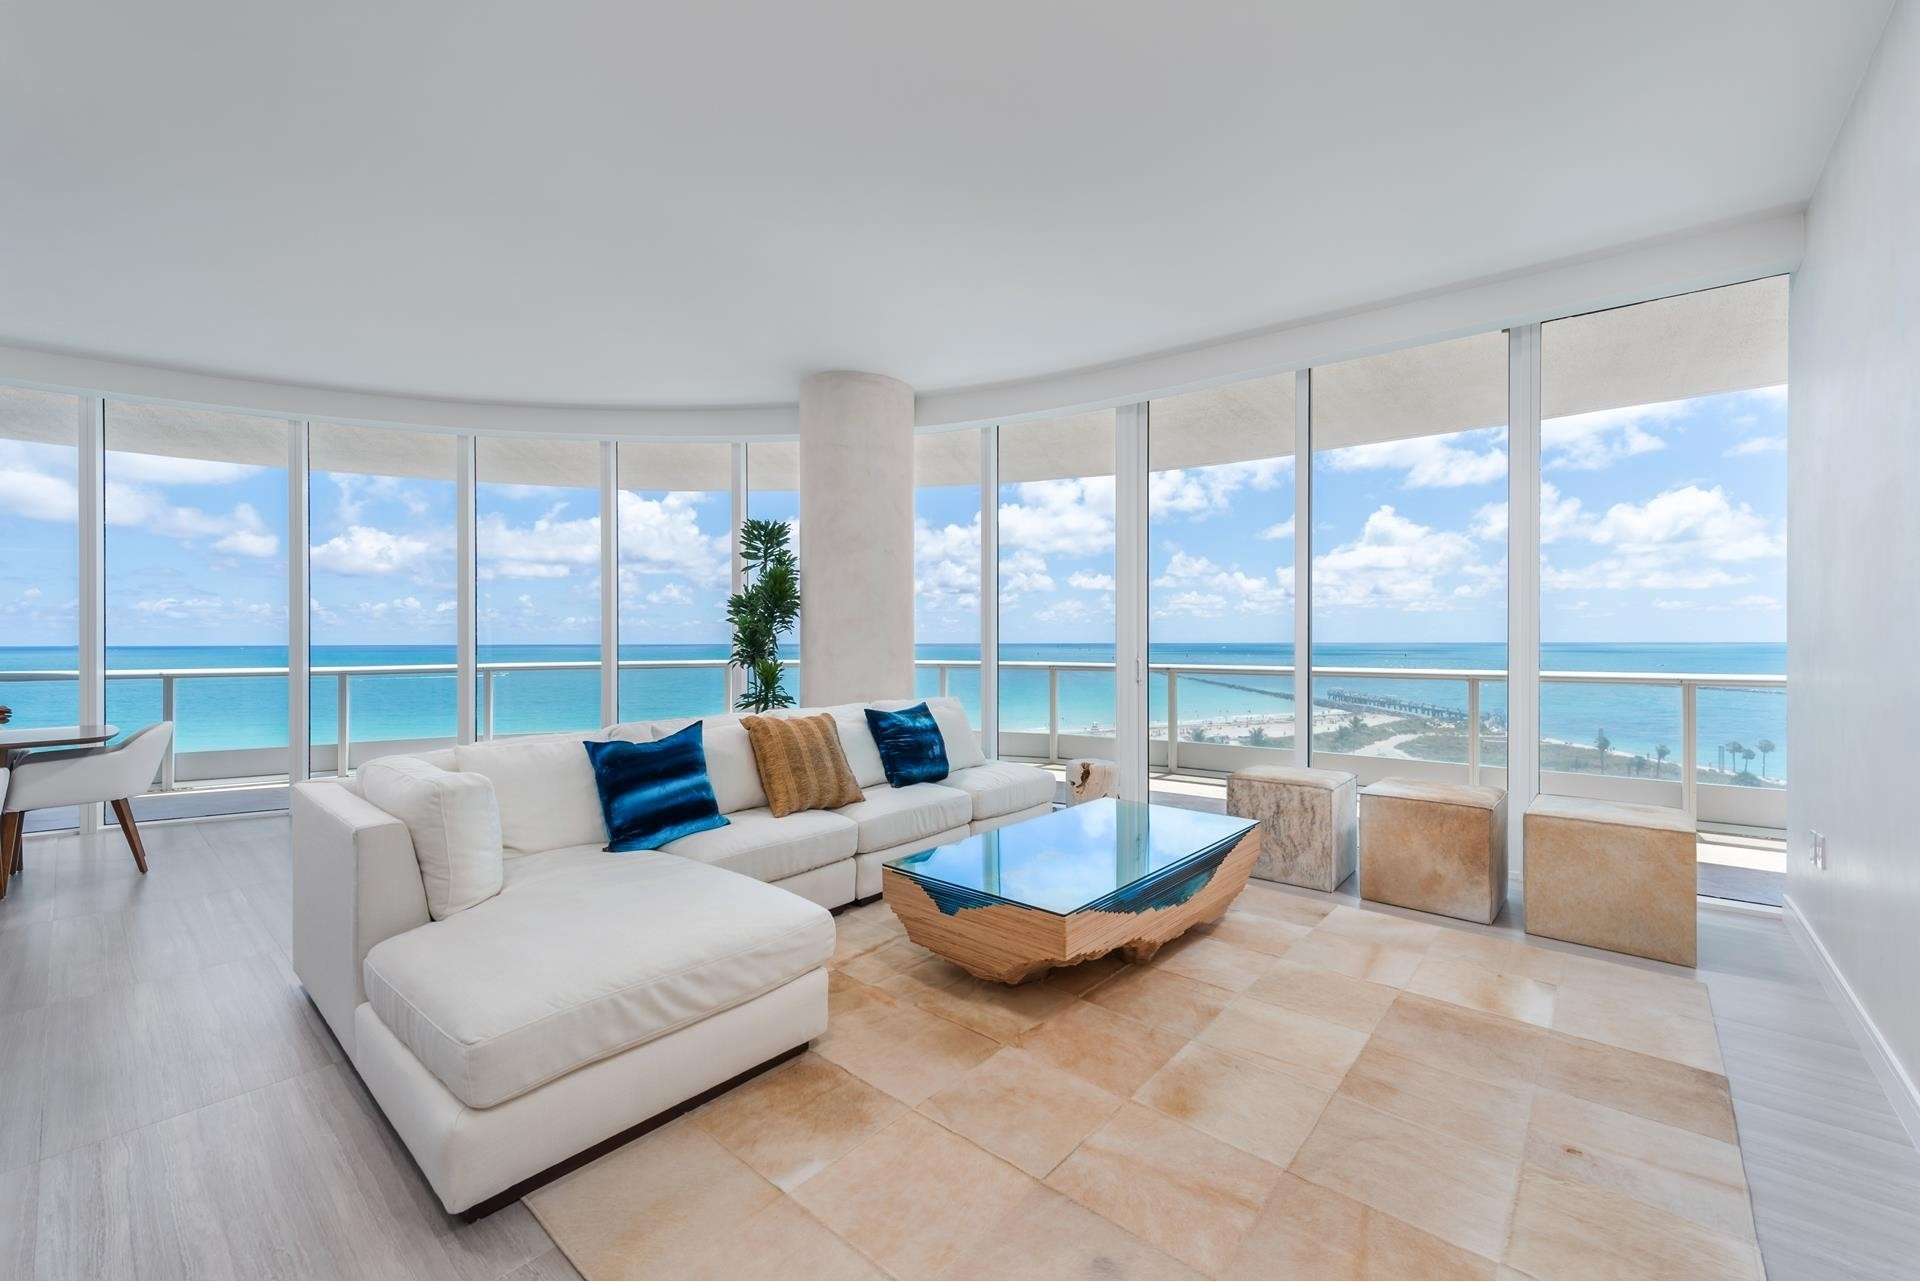 Condominium at 100 S Pointe Dr , 1006 South Point, Miami Beach, FL 33139